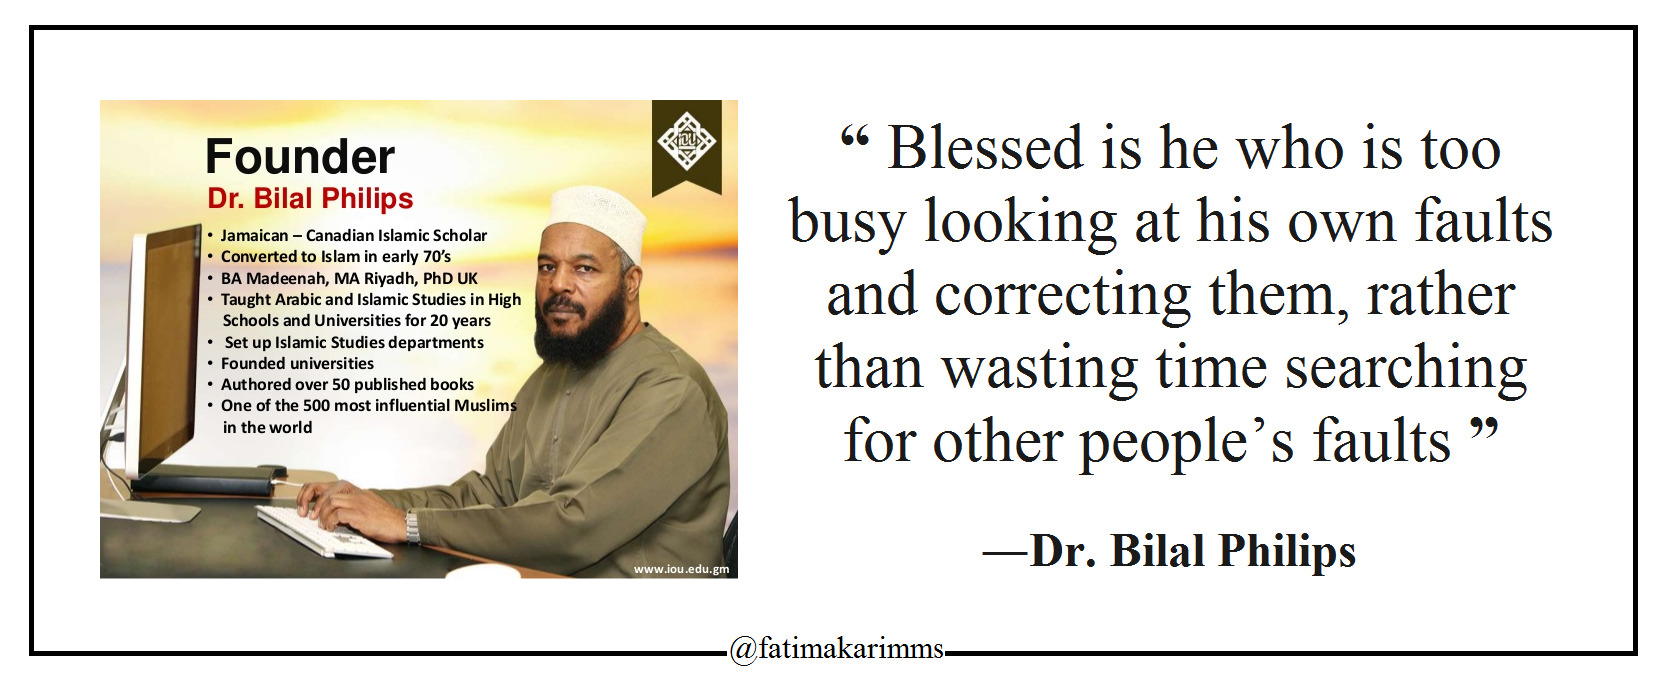 """ Blessed is he who is too busy looking at his own faults and correcting them, rather than wasting time searching for other people's faults "" ―Dr. Bilal Philips [1666*676] [OC]"